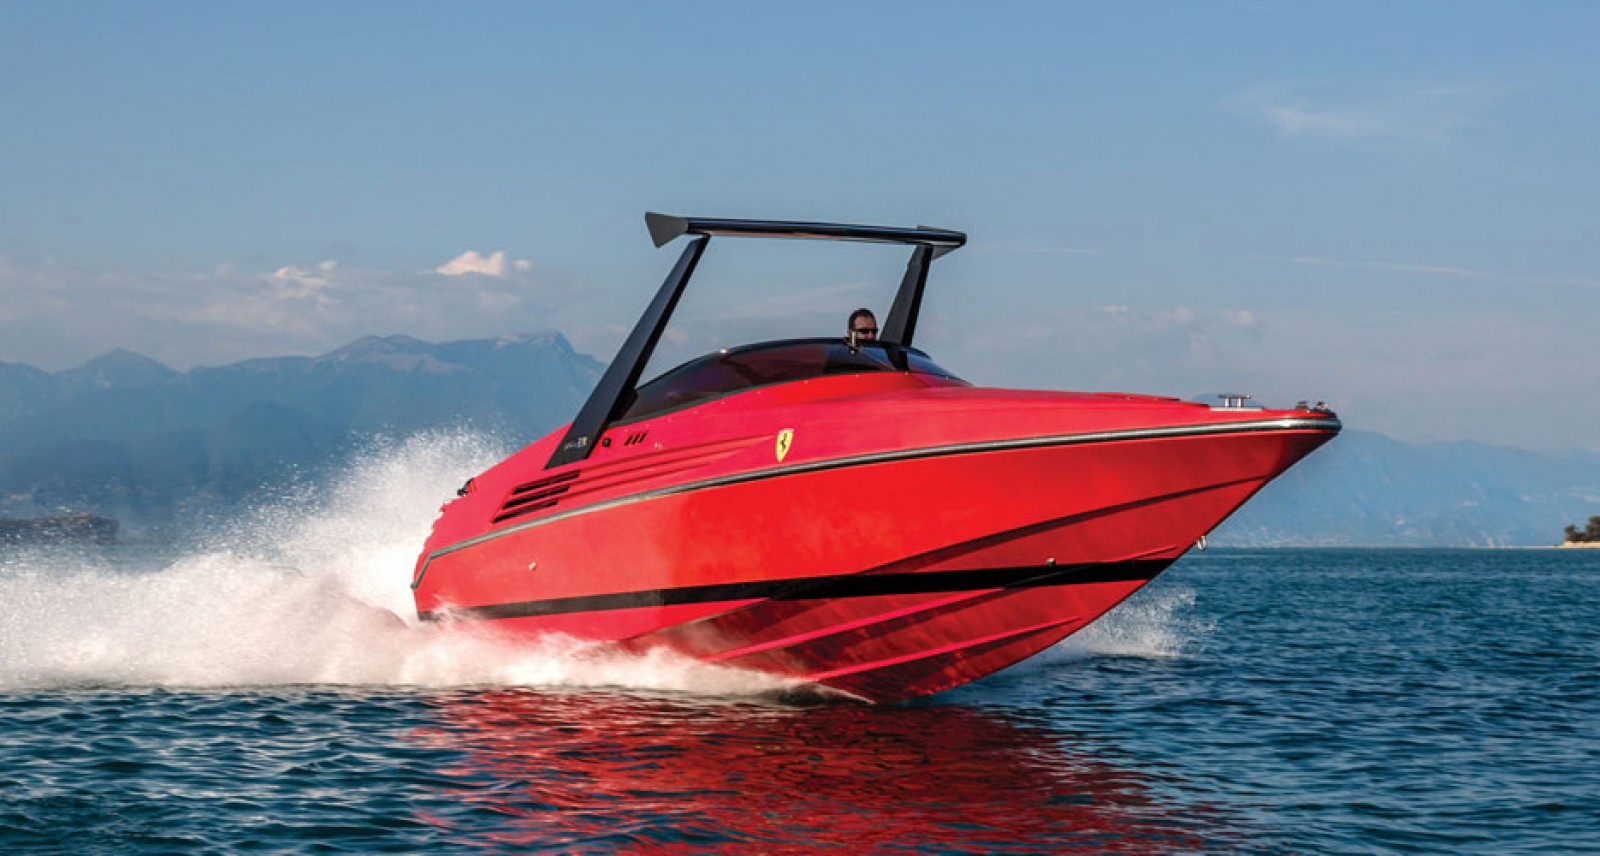 You Can Own This Extremely Rare Riva Ferrari Speedboat